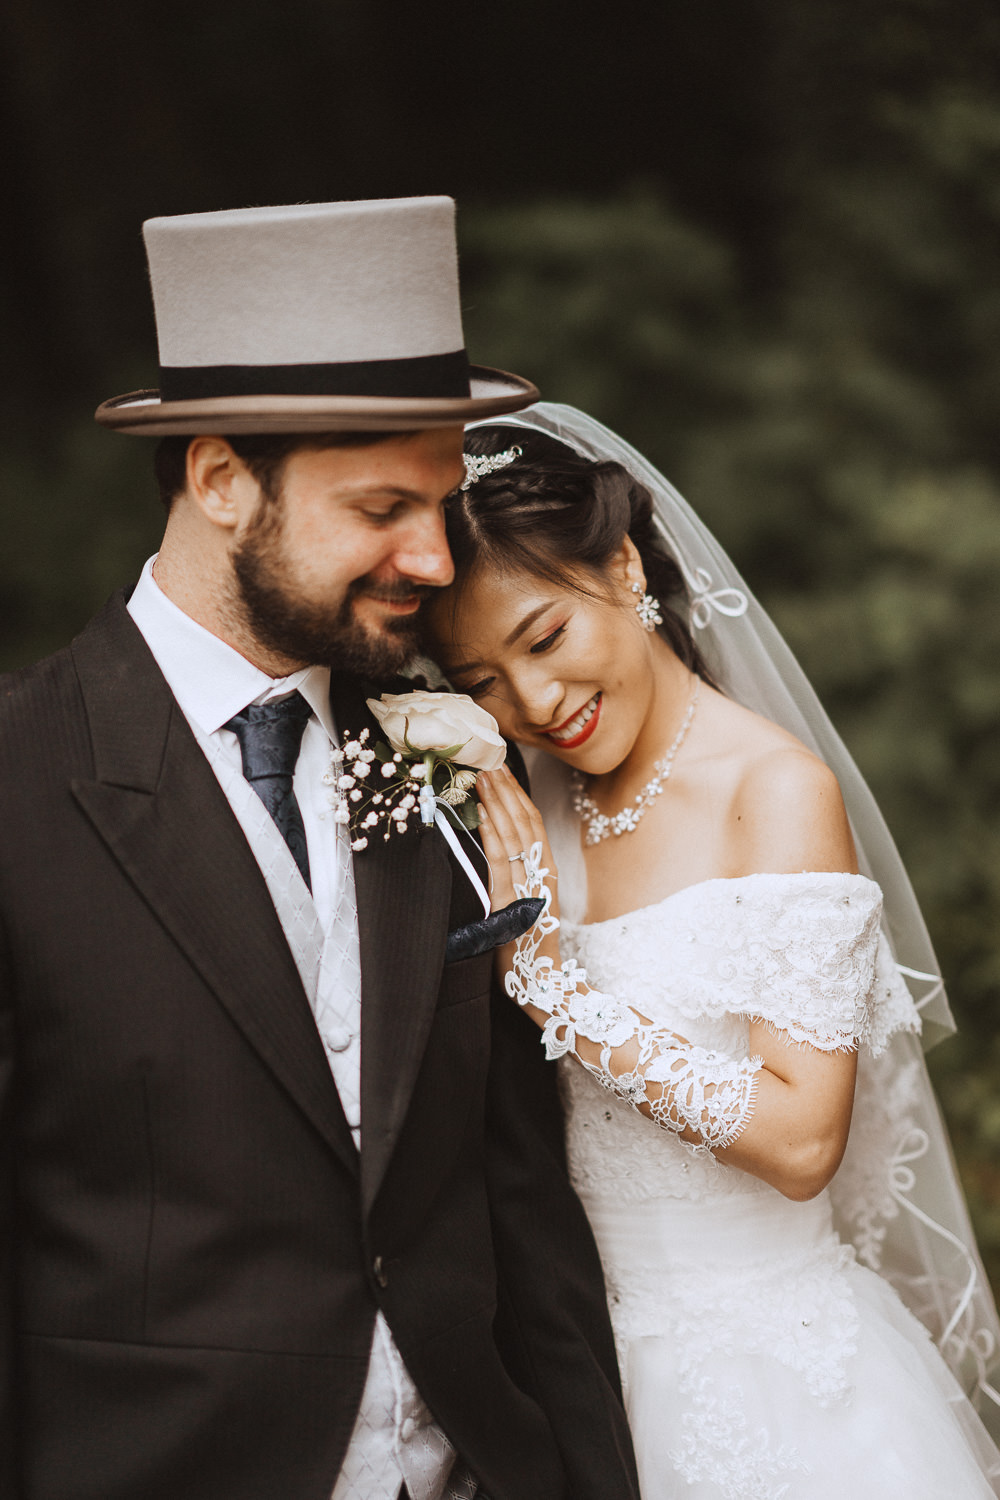 Nick and Ting at Inglewood Manor, Cheshire